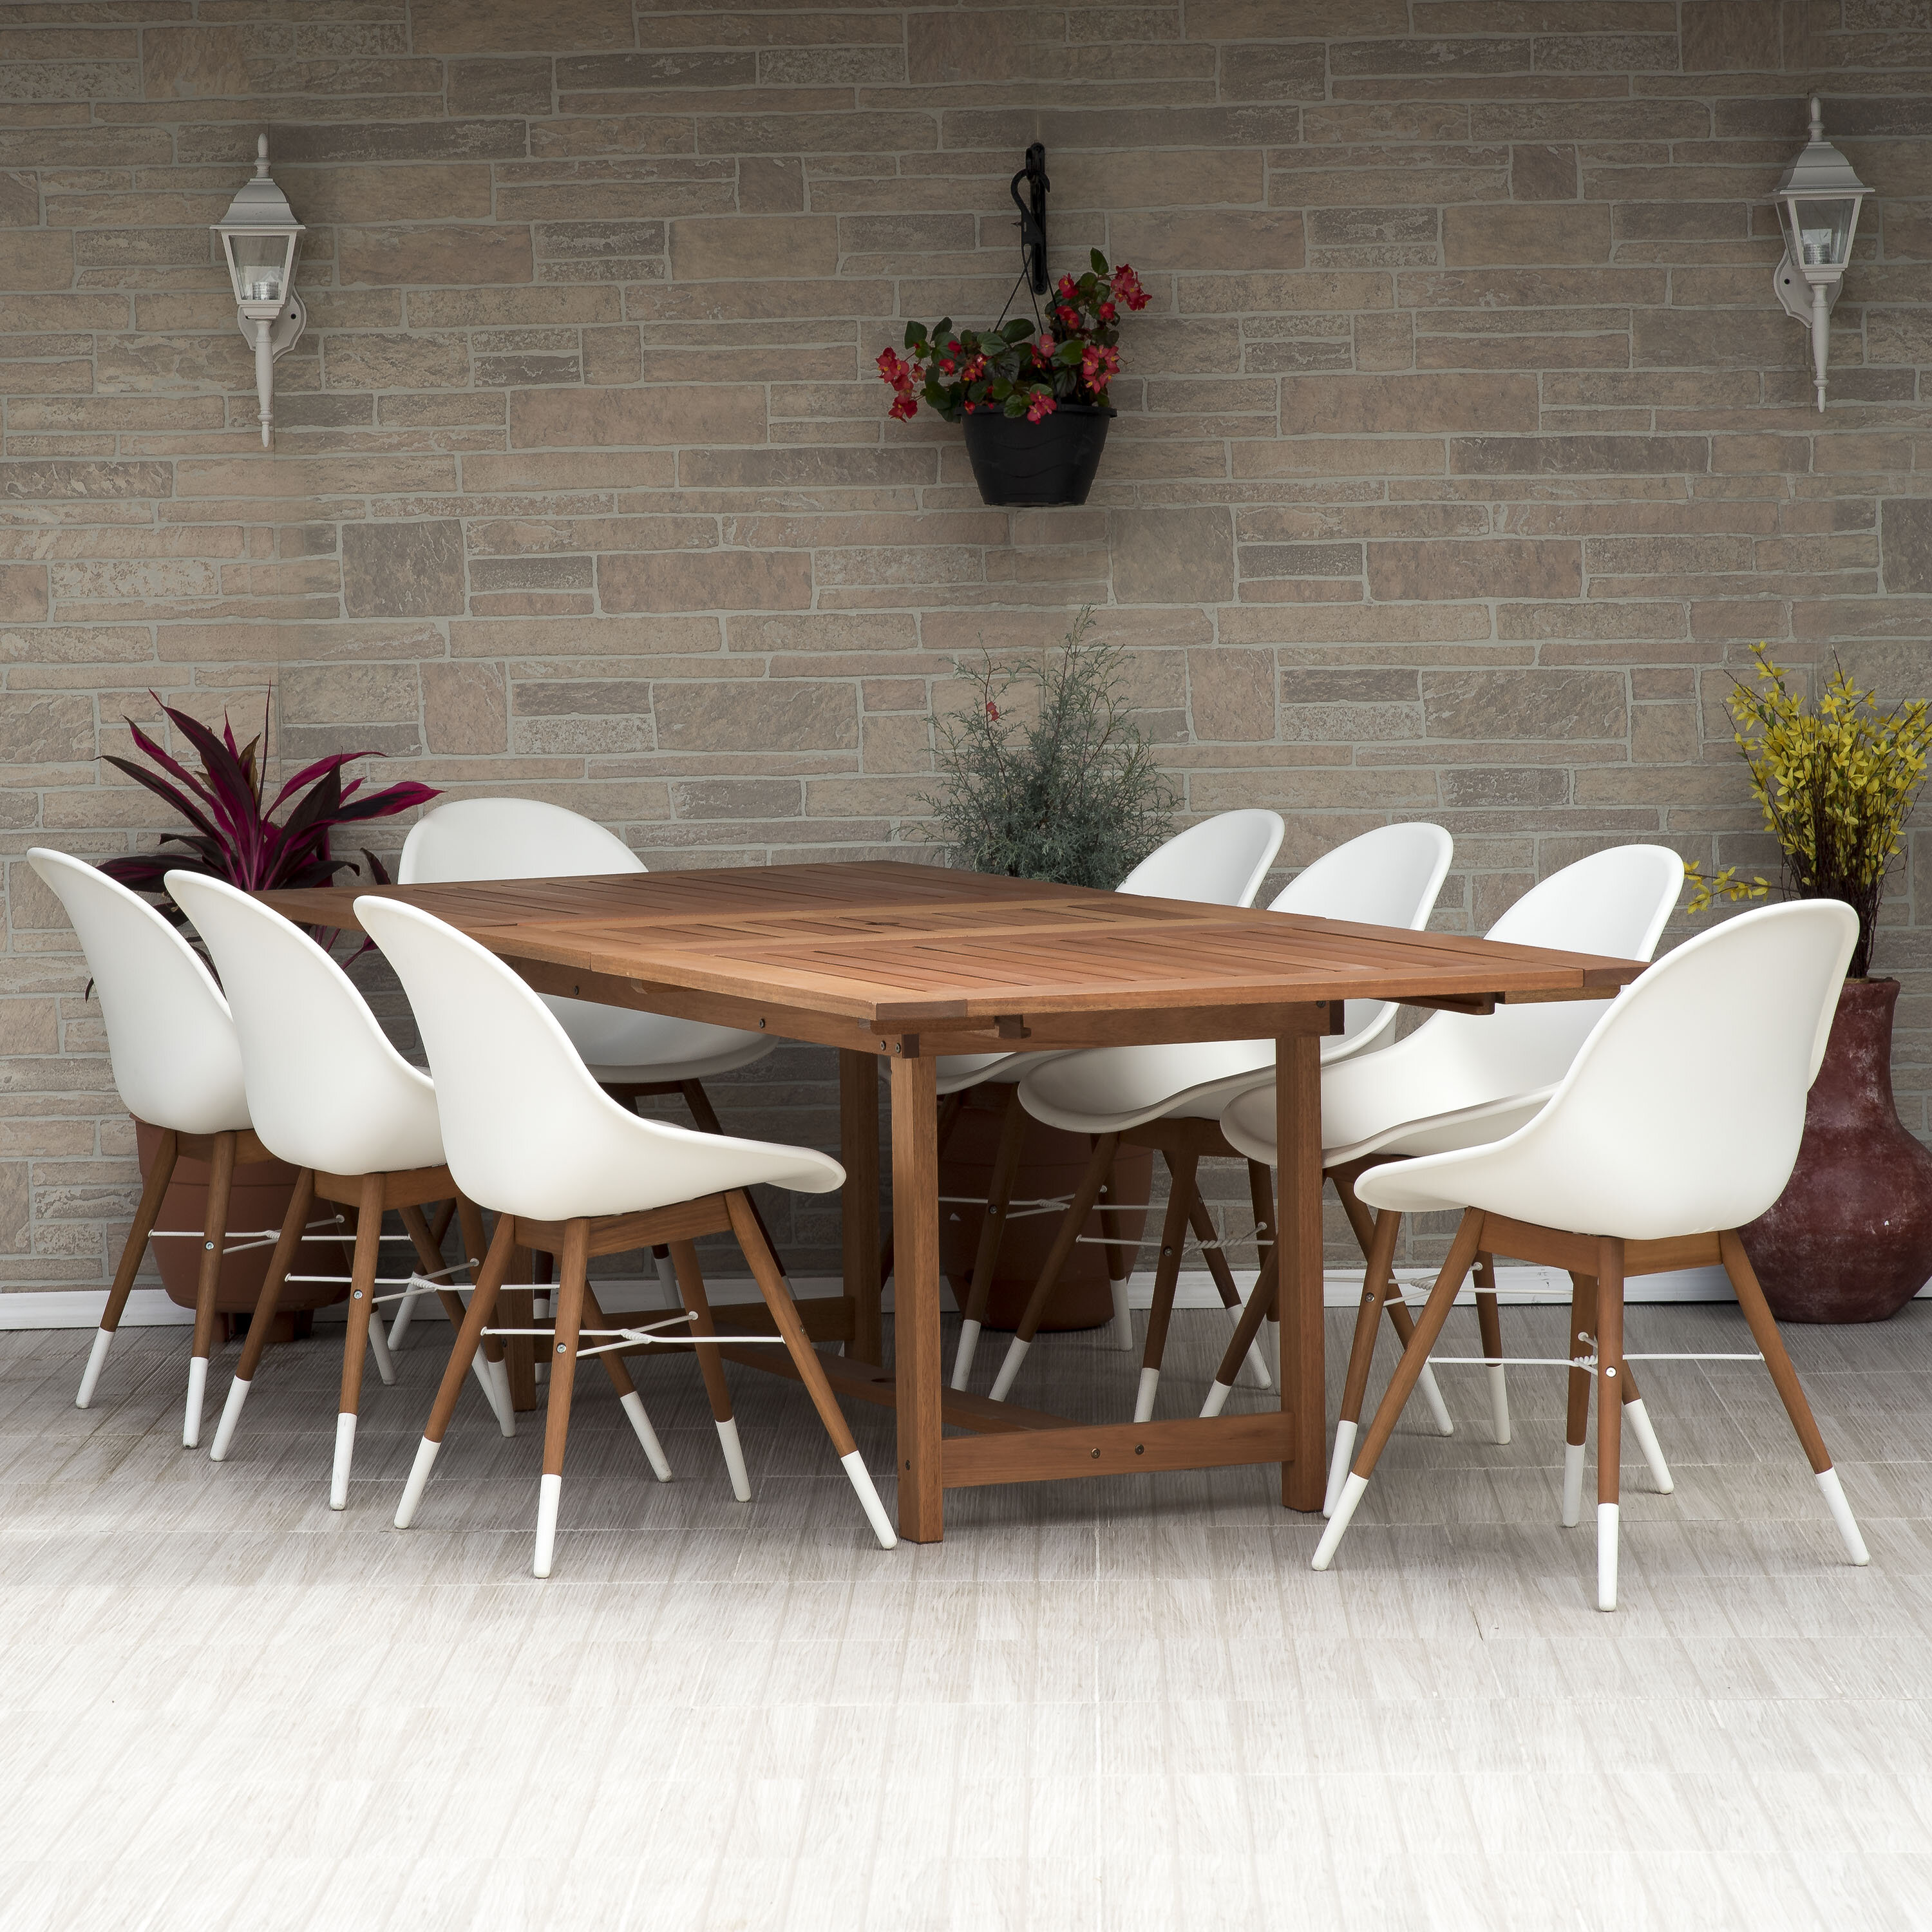 Corrigan Studio Cruise 9 Piece Dining Set